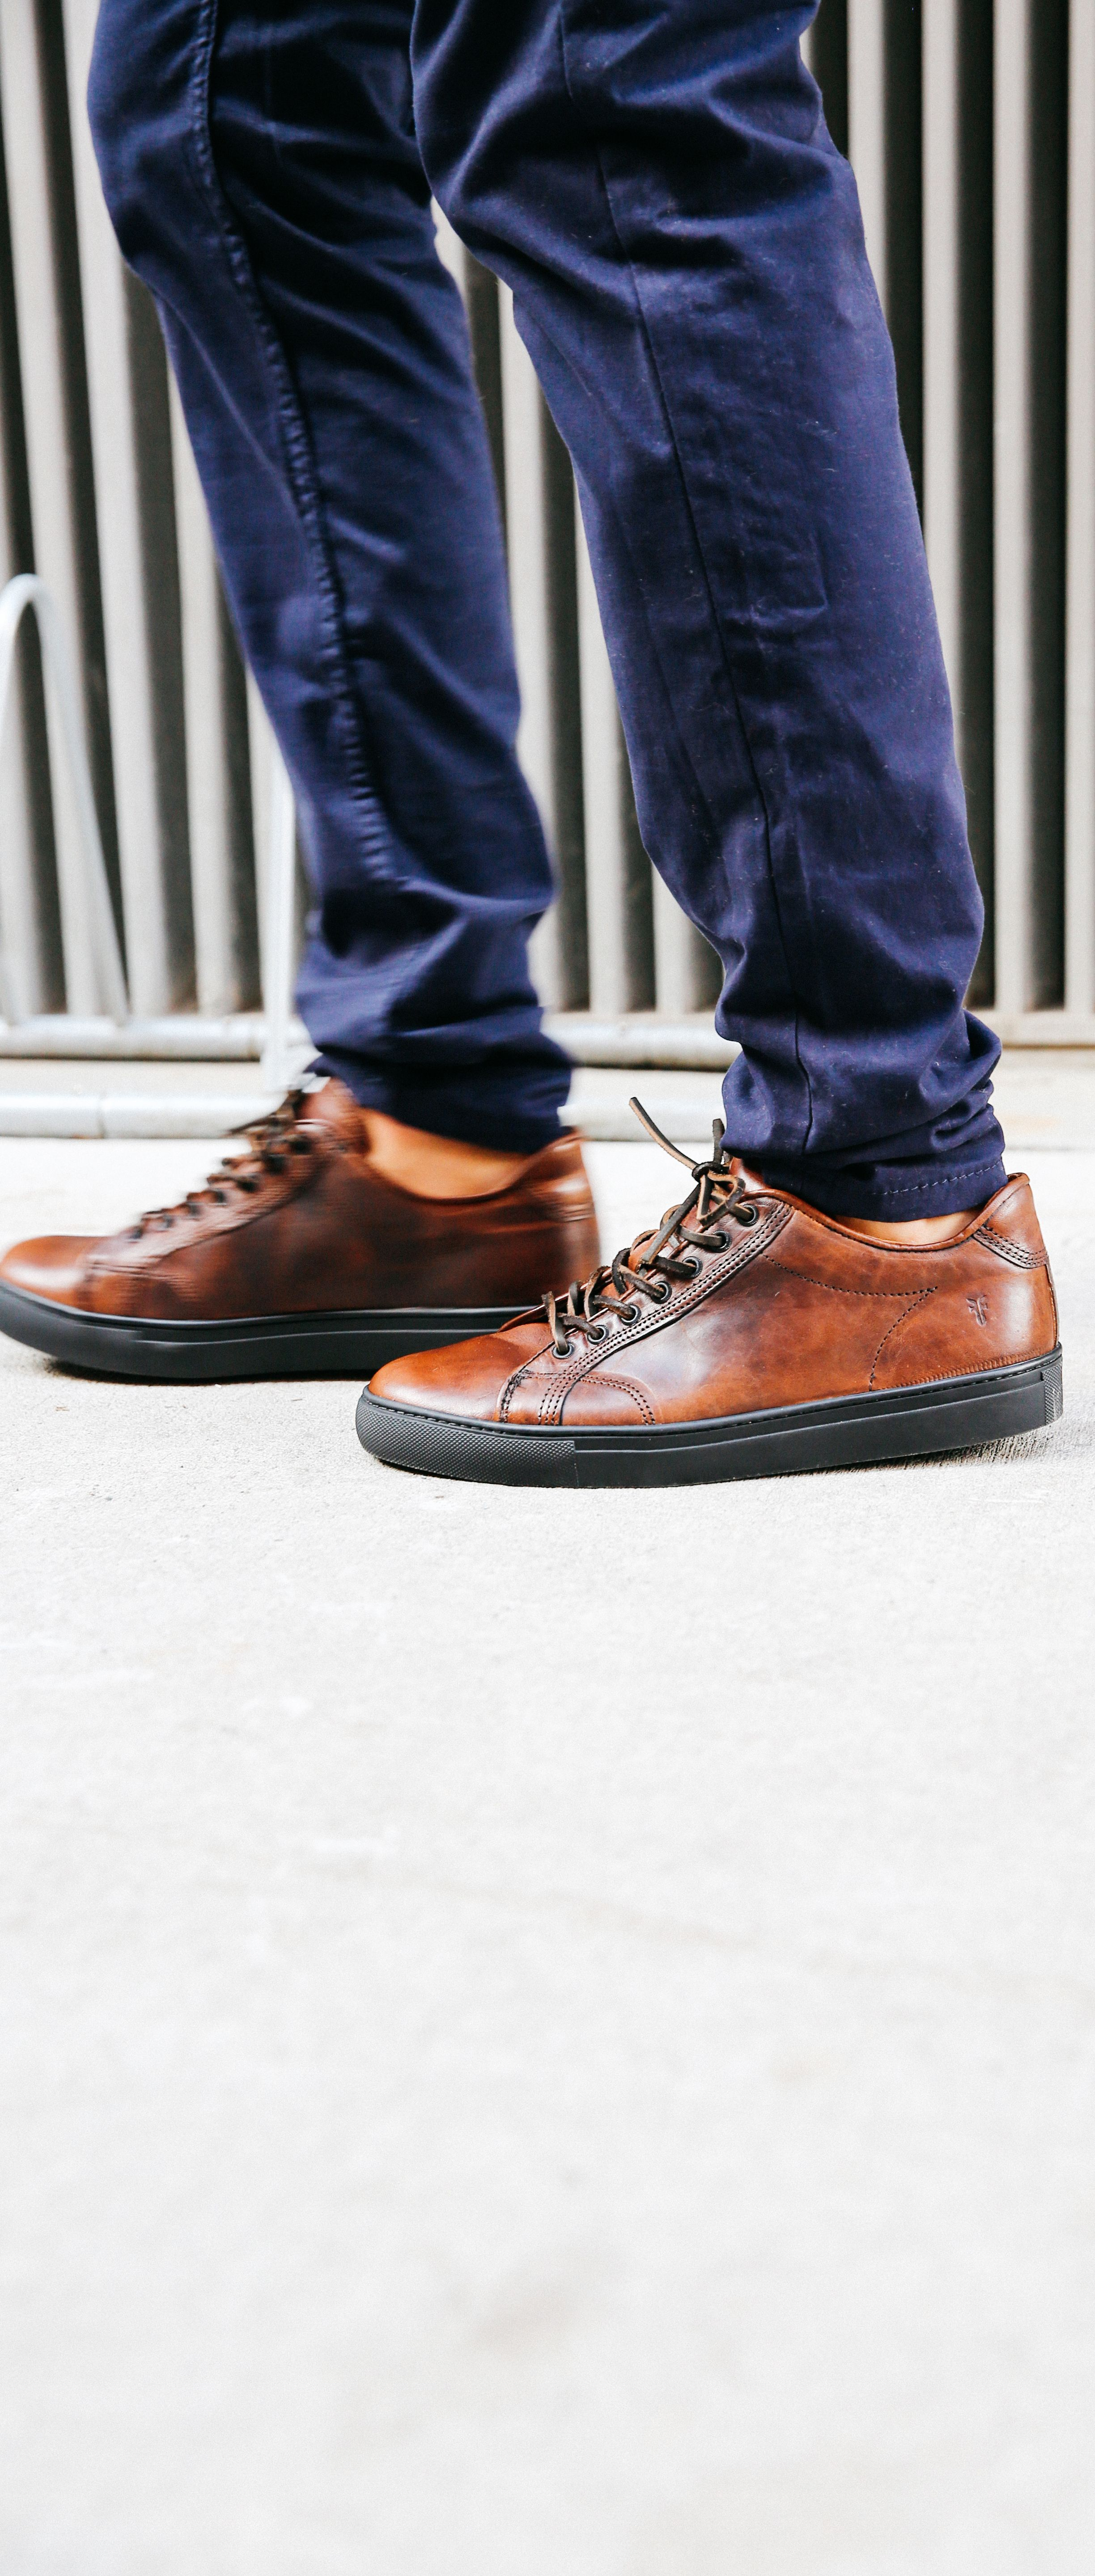 Walker Low Lace   Raw leather, Leather